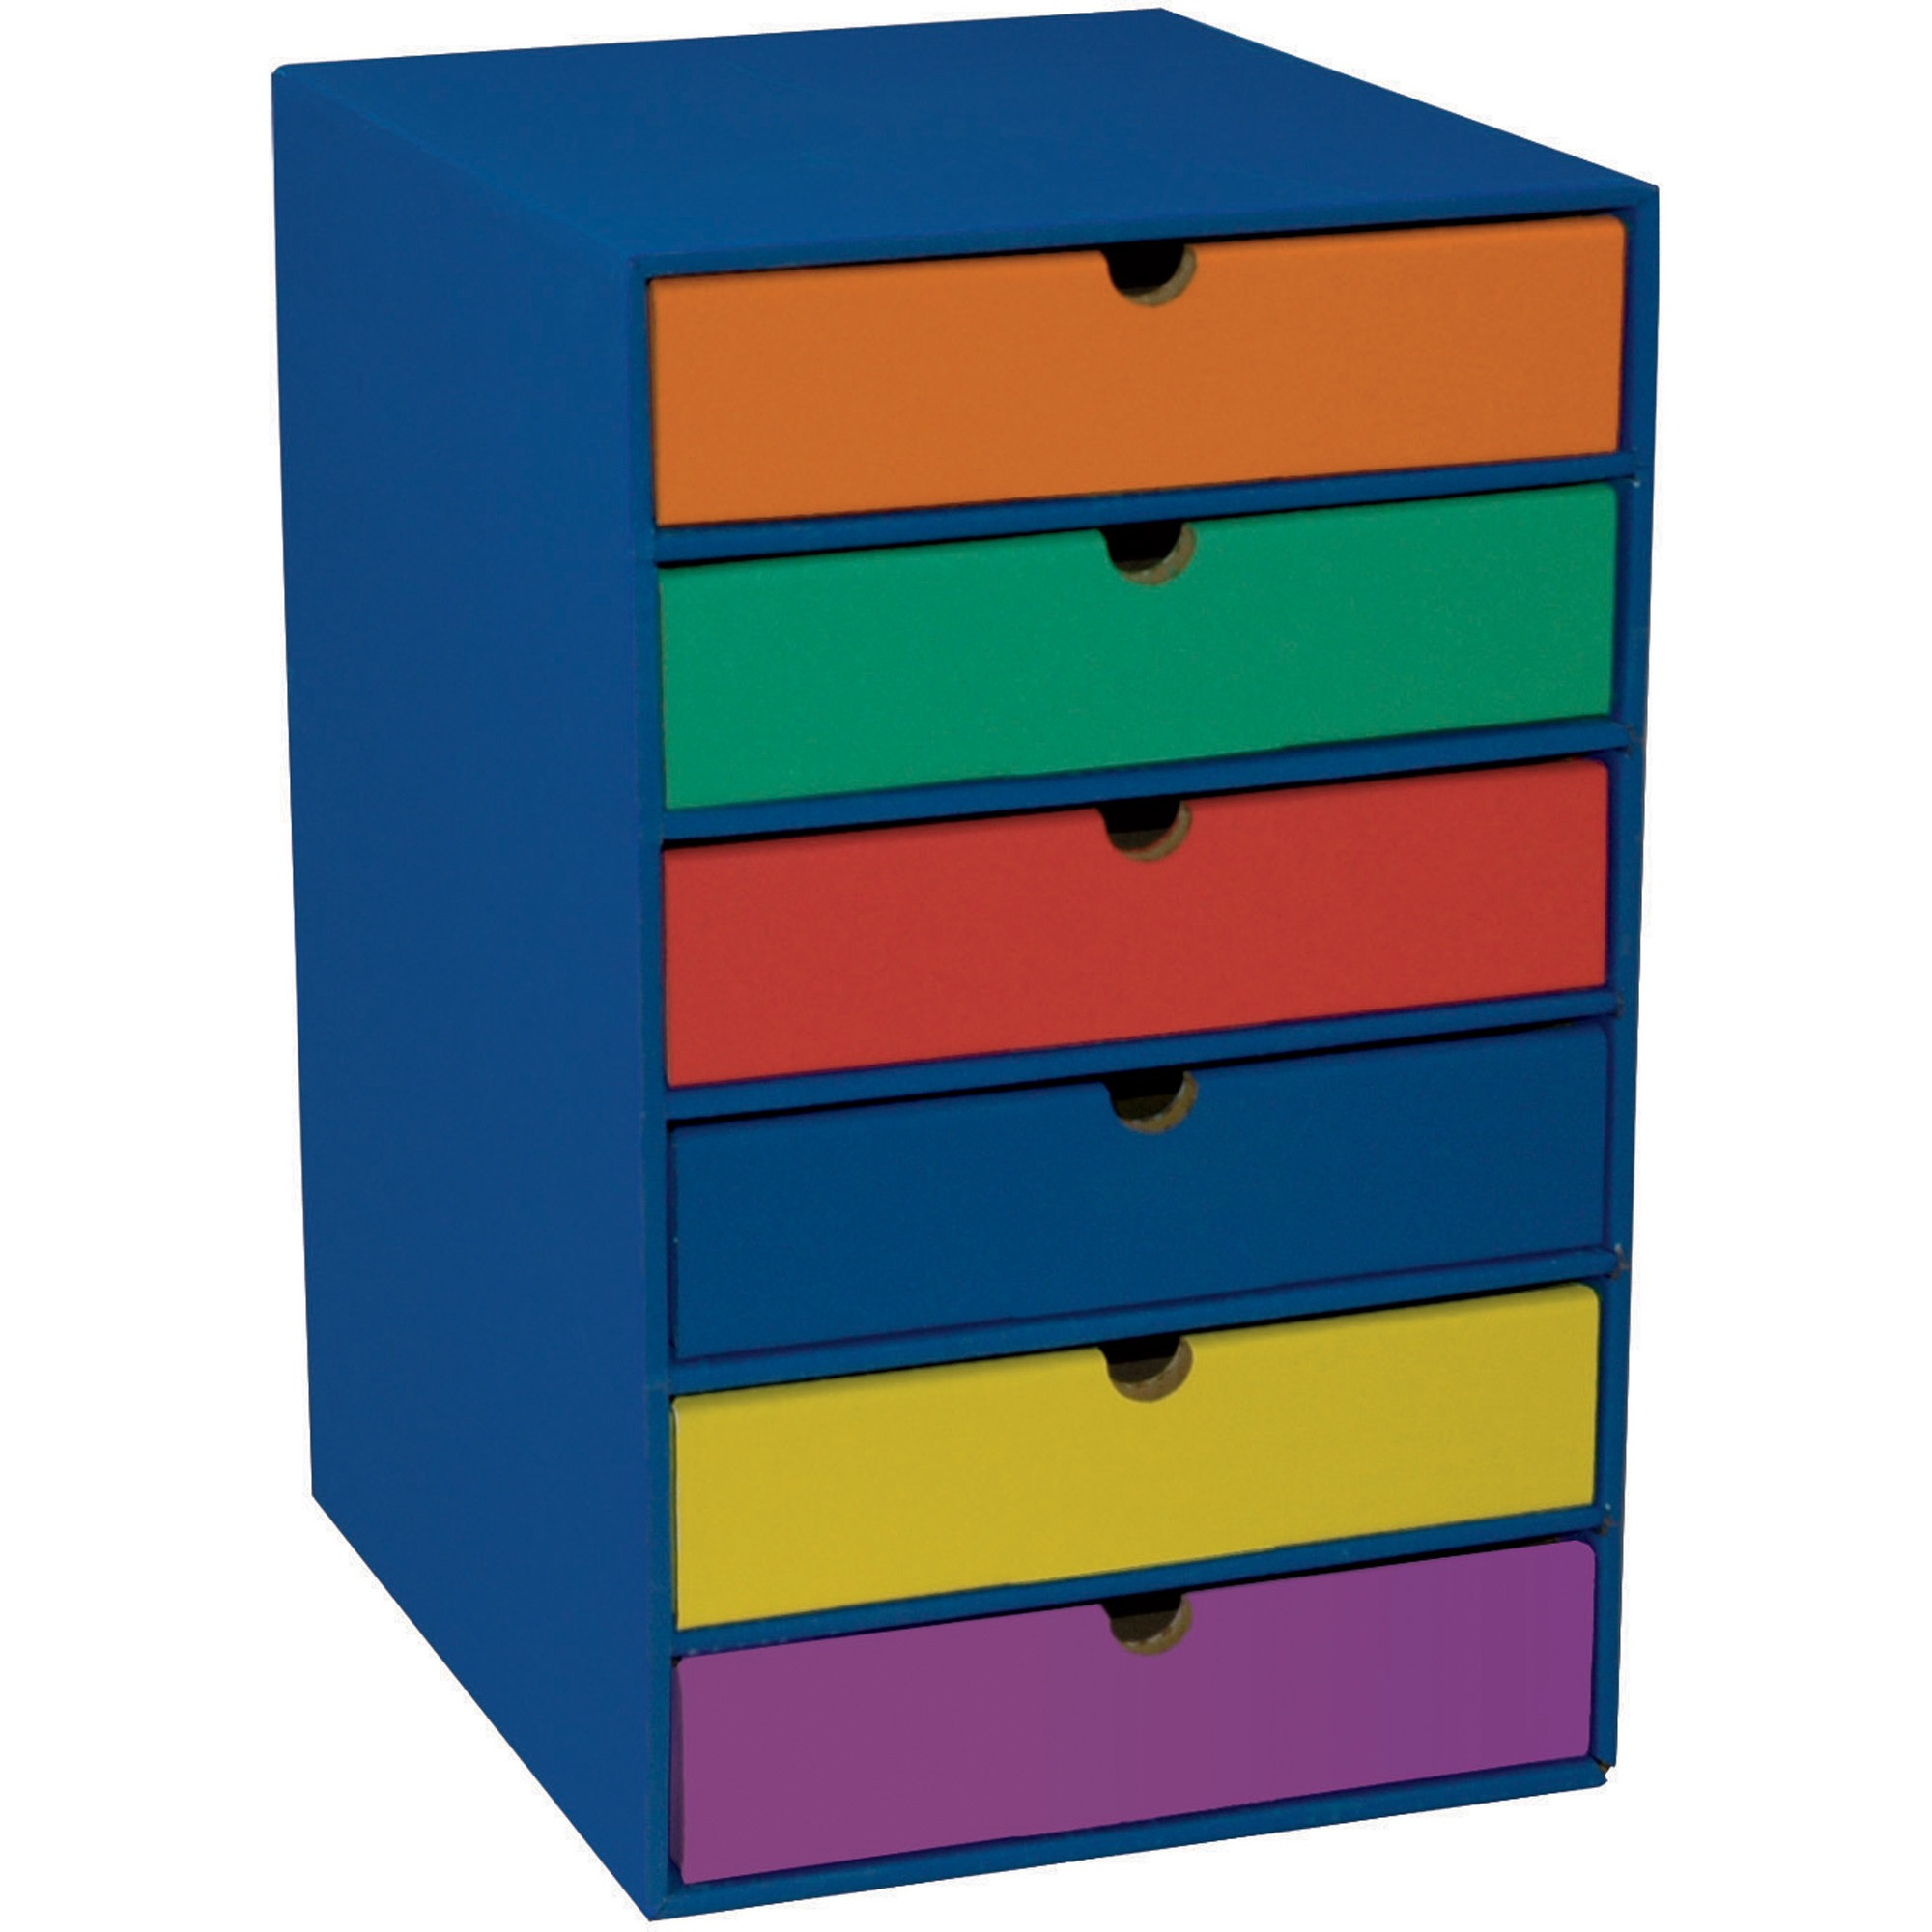 Classroom Keepers Blue 6-Shelf Organizer & Multi-Colored Drawers